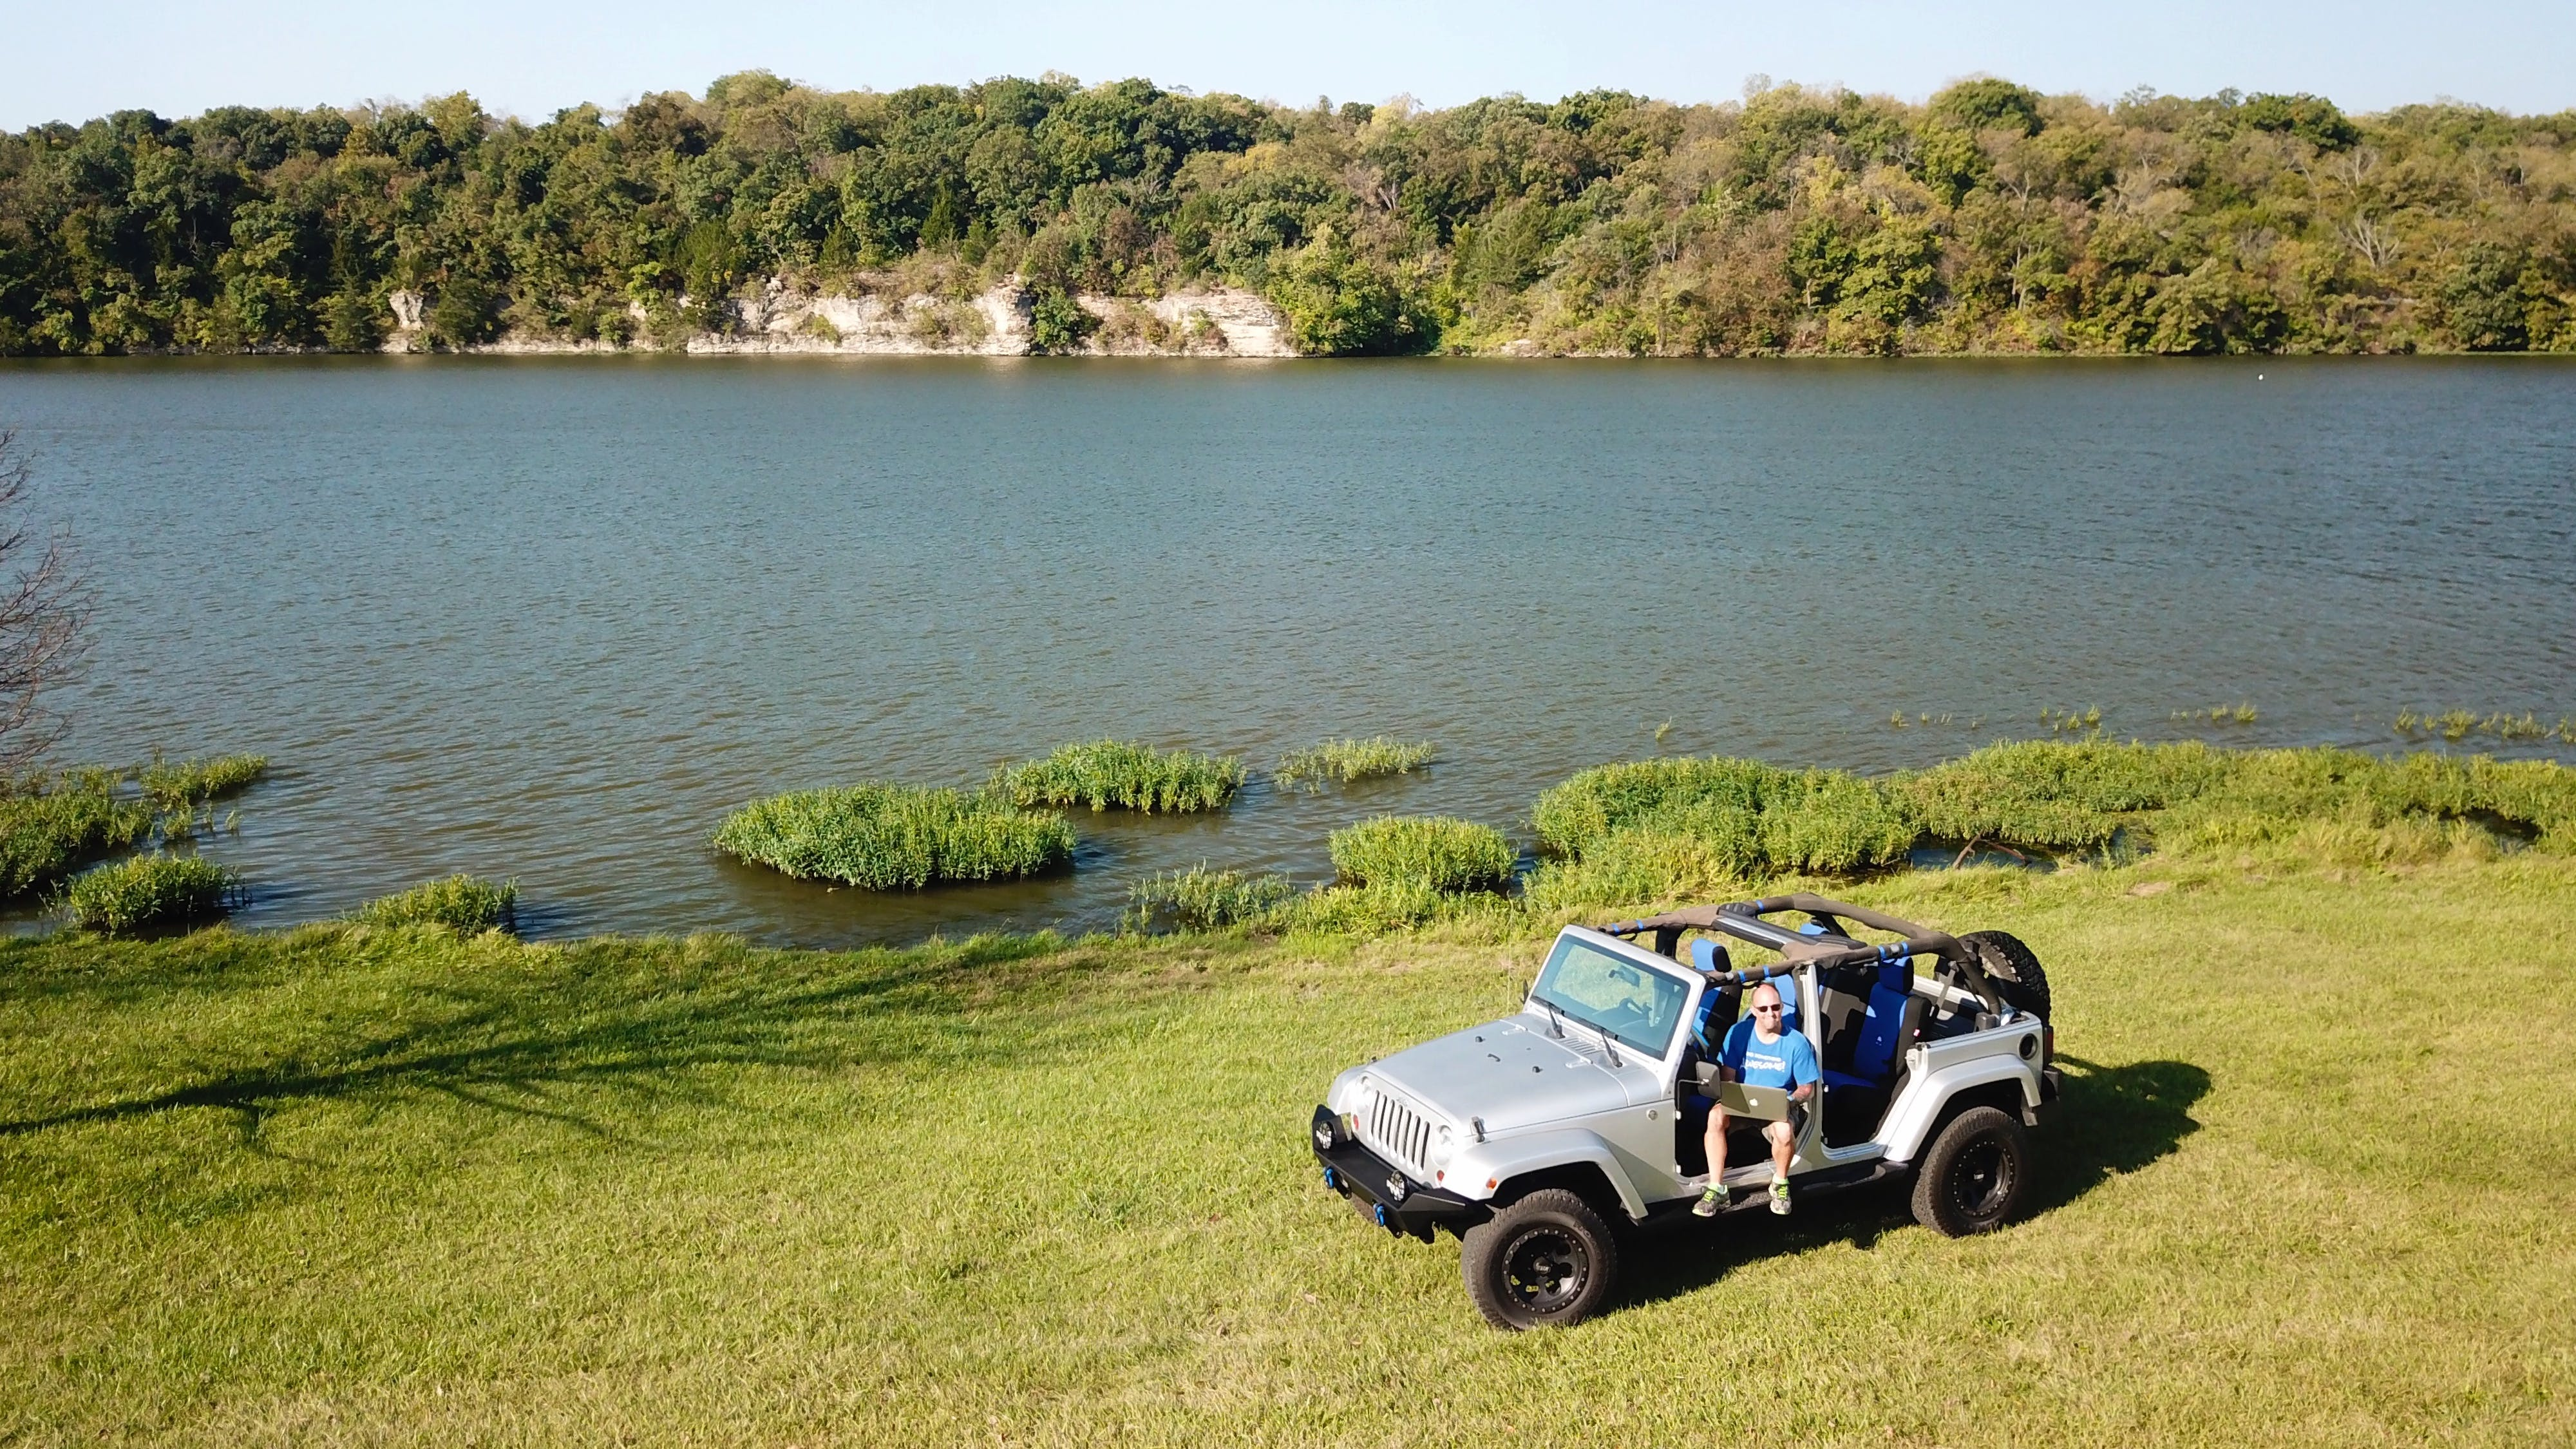 Free stock photo of lake, jeep, aerial view